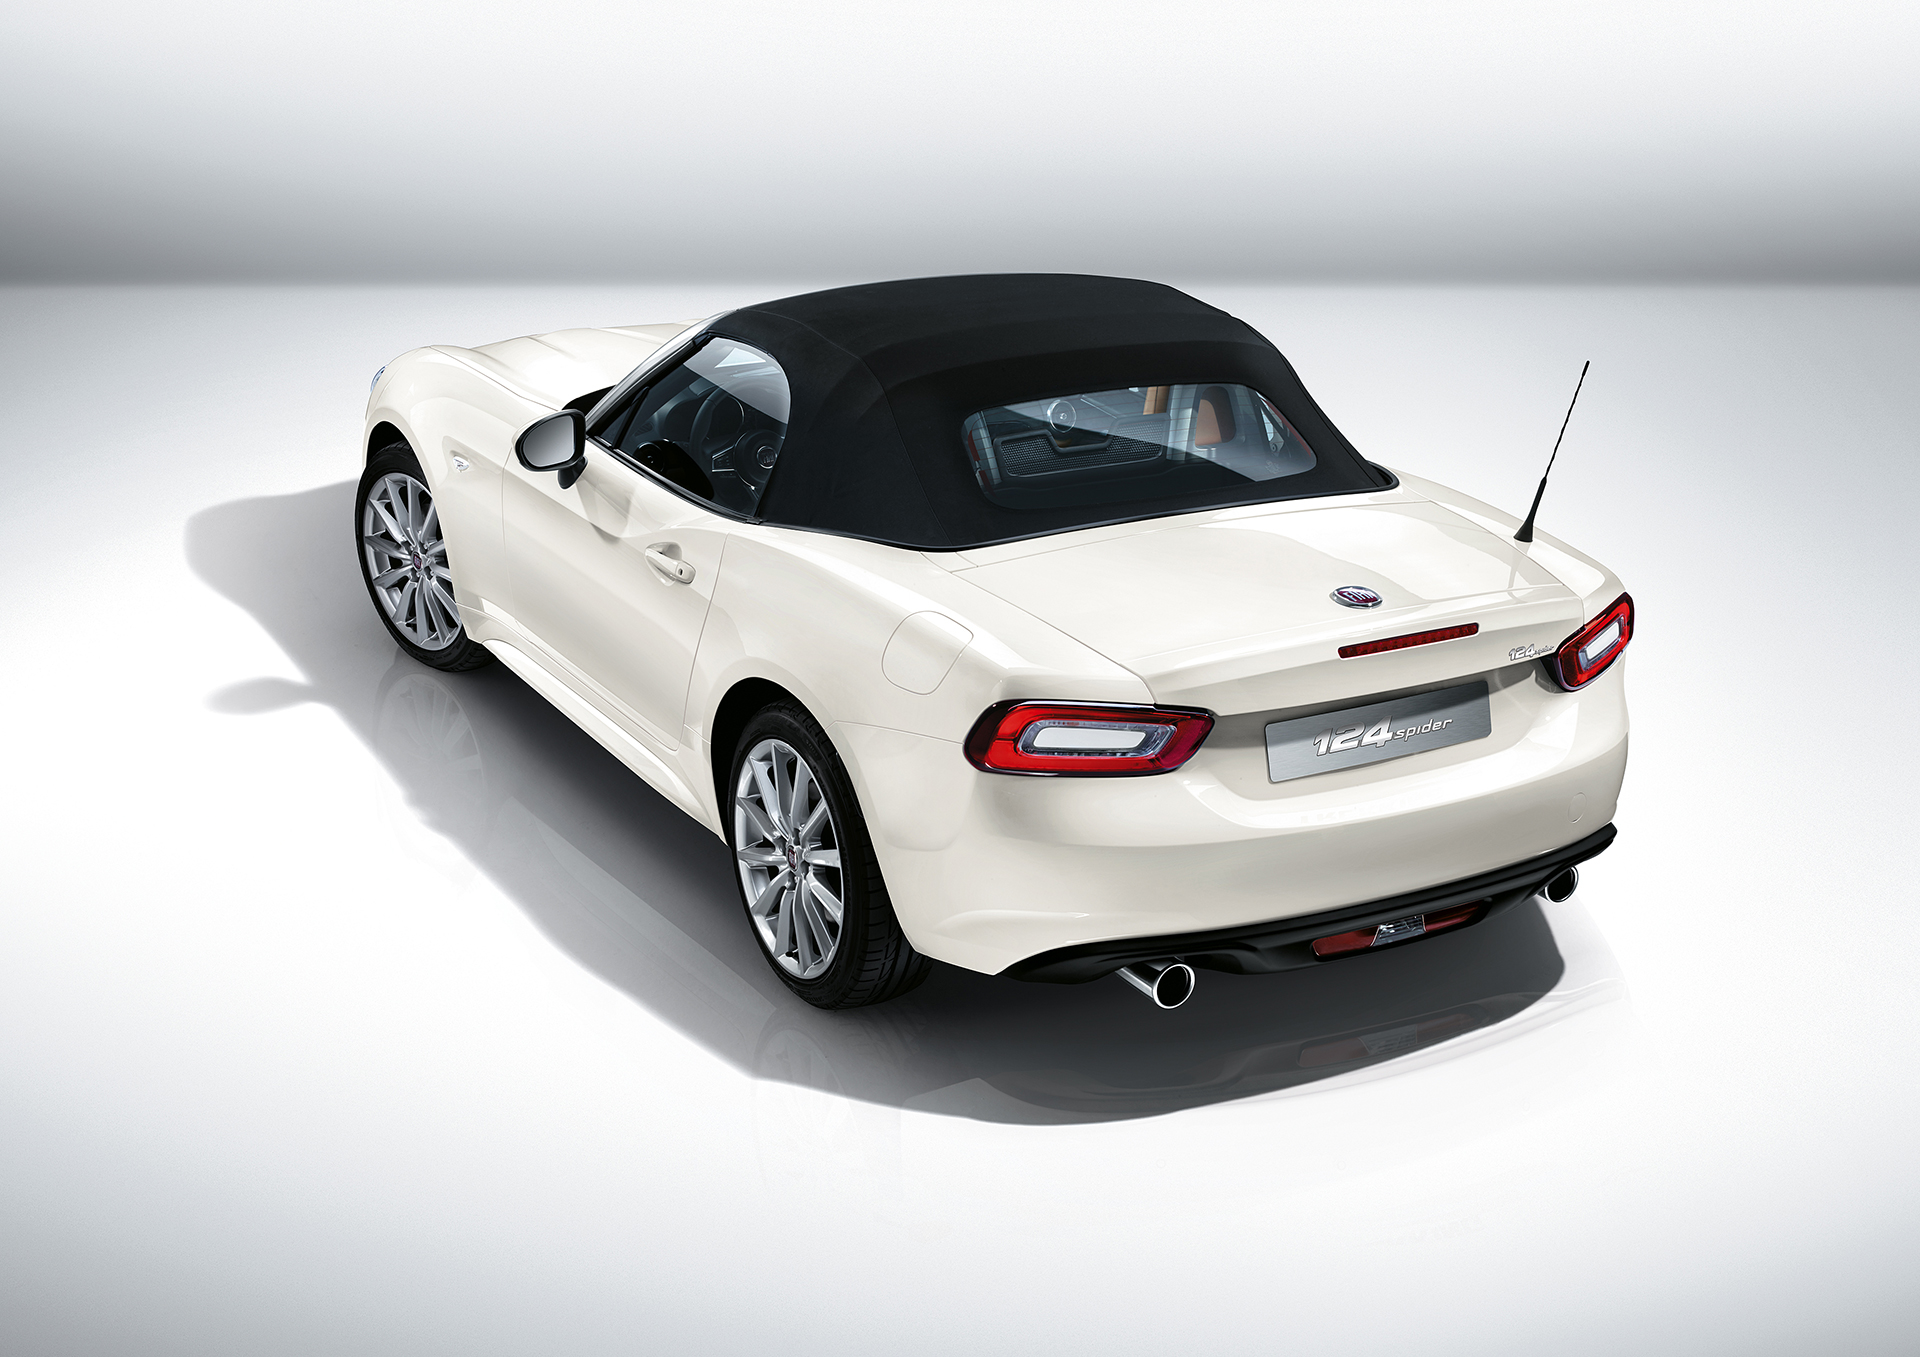 Fiat 124 Spider 2016 - profil arrière / rear side-face - close top / toit fermé